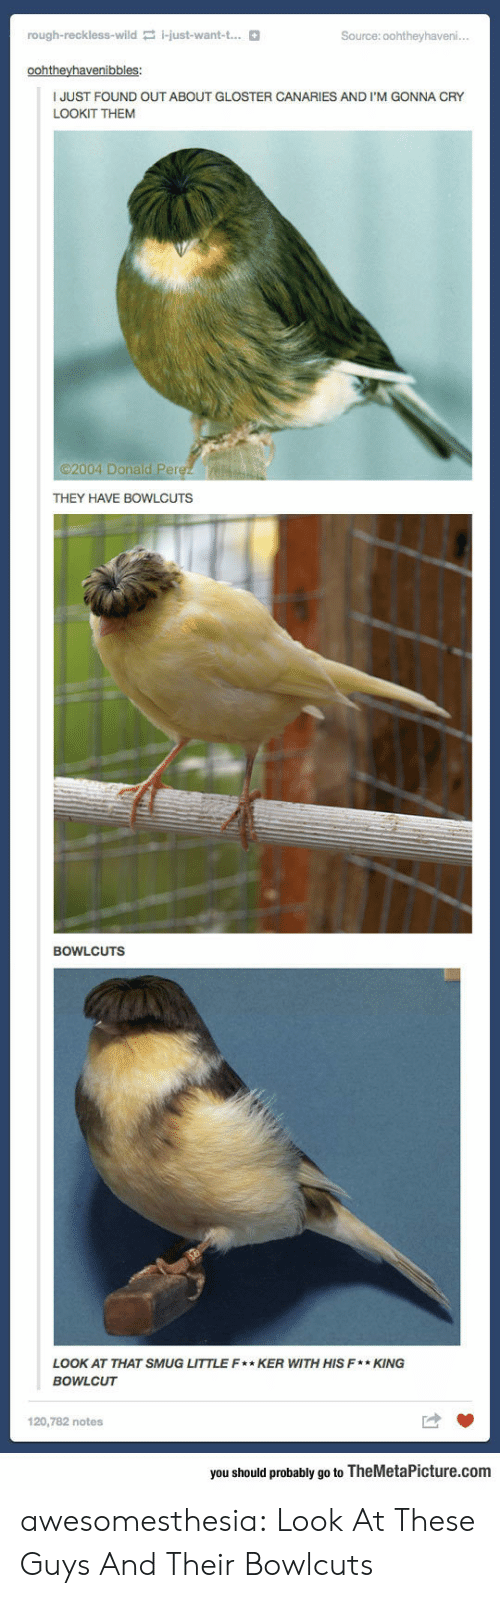 Tumblr, Blog, and Wild: rough-reckless-wild i-just-want-t...  Source: 0ohtheyhaveni..  oohtheyhavenibbles:  JUST FOUND OUT ABOUT GLOSTER CANARIES AND I'M GONNA CRY  LOOKIT THEM  2004 Donald Perez  THEY HAVE BOWLCUTS  BOWLCUTS  LOOK AT THAT SMUG LITTLE F* KER WITH HIS F*KING  BOWLCUT  120,782 notes  you should probably go to TheMetaPicture.com awesomesthesia:  Look At These Guys And Their Bowlcuts